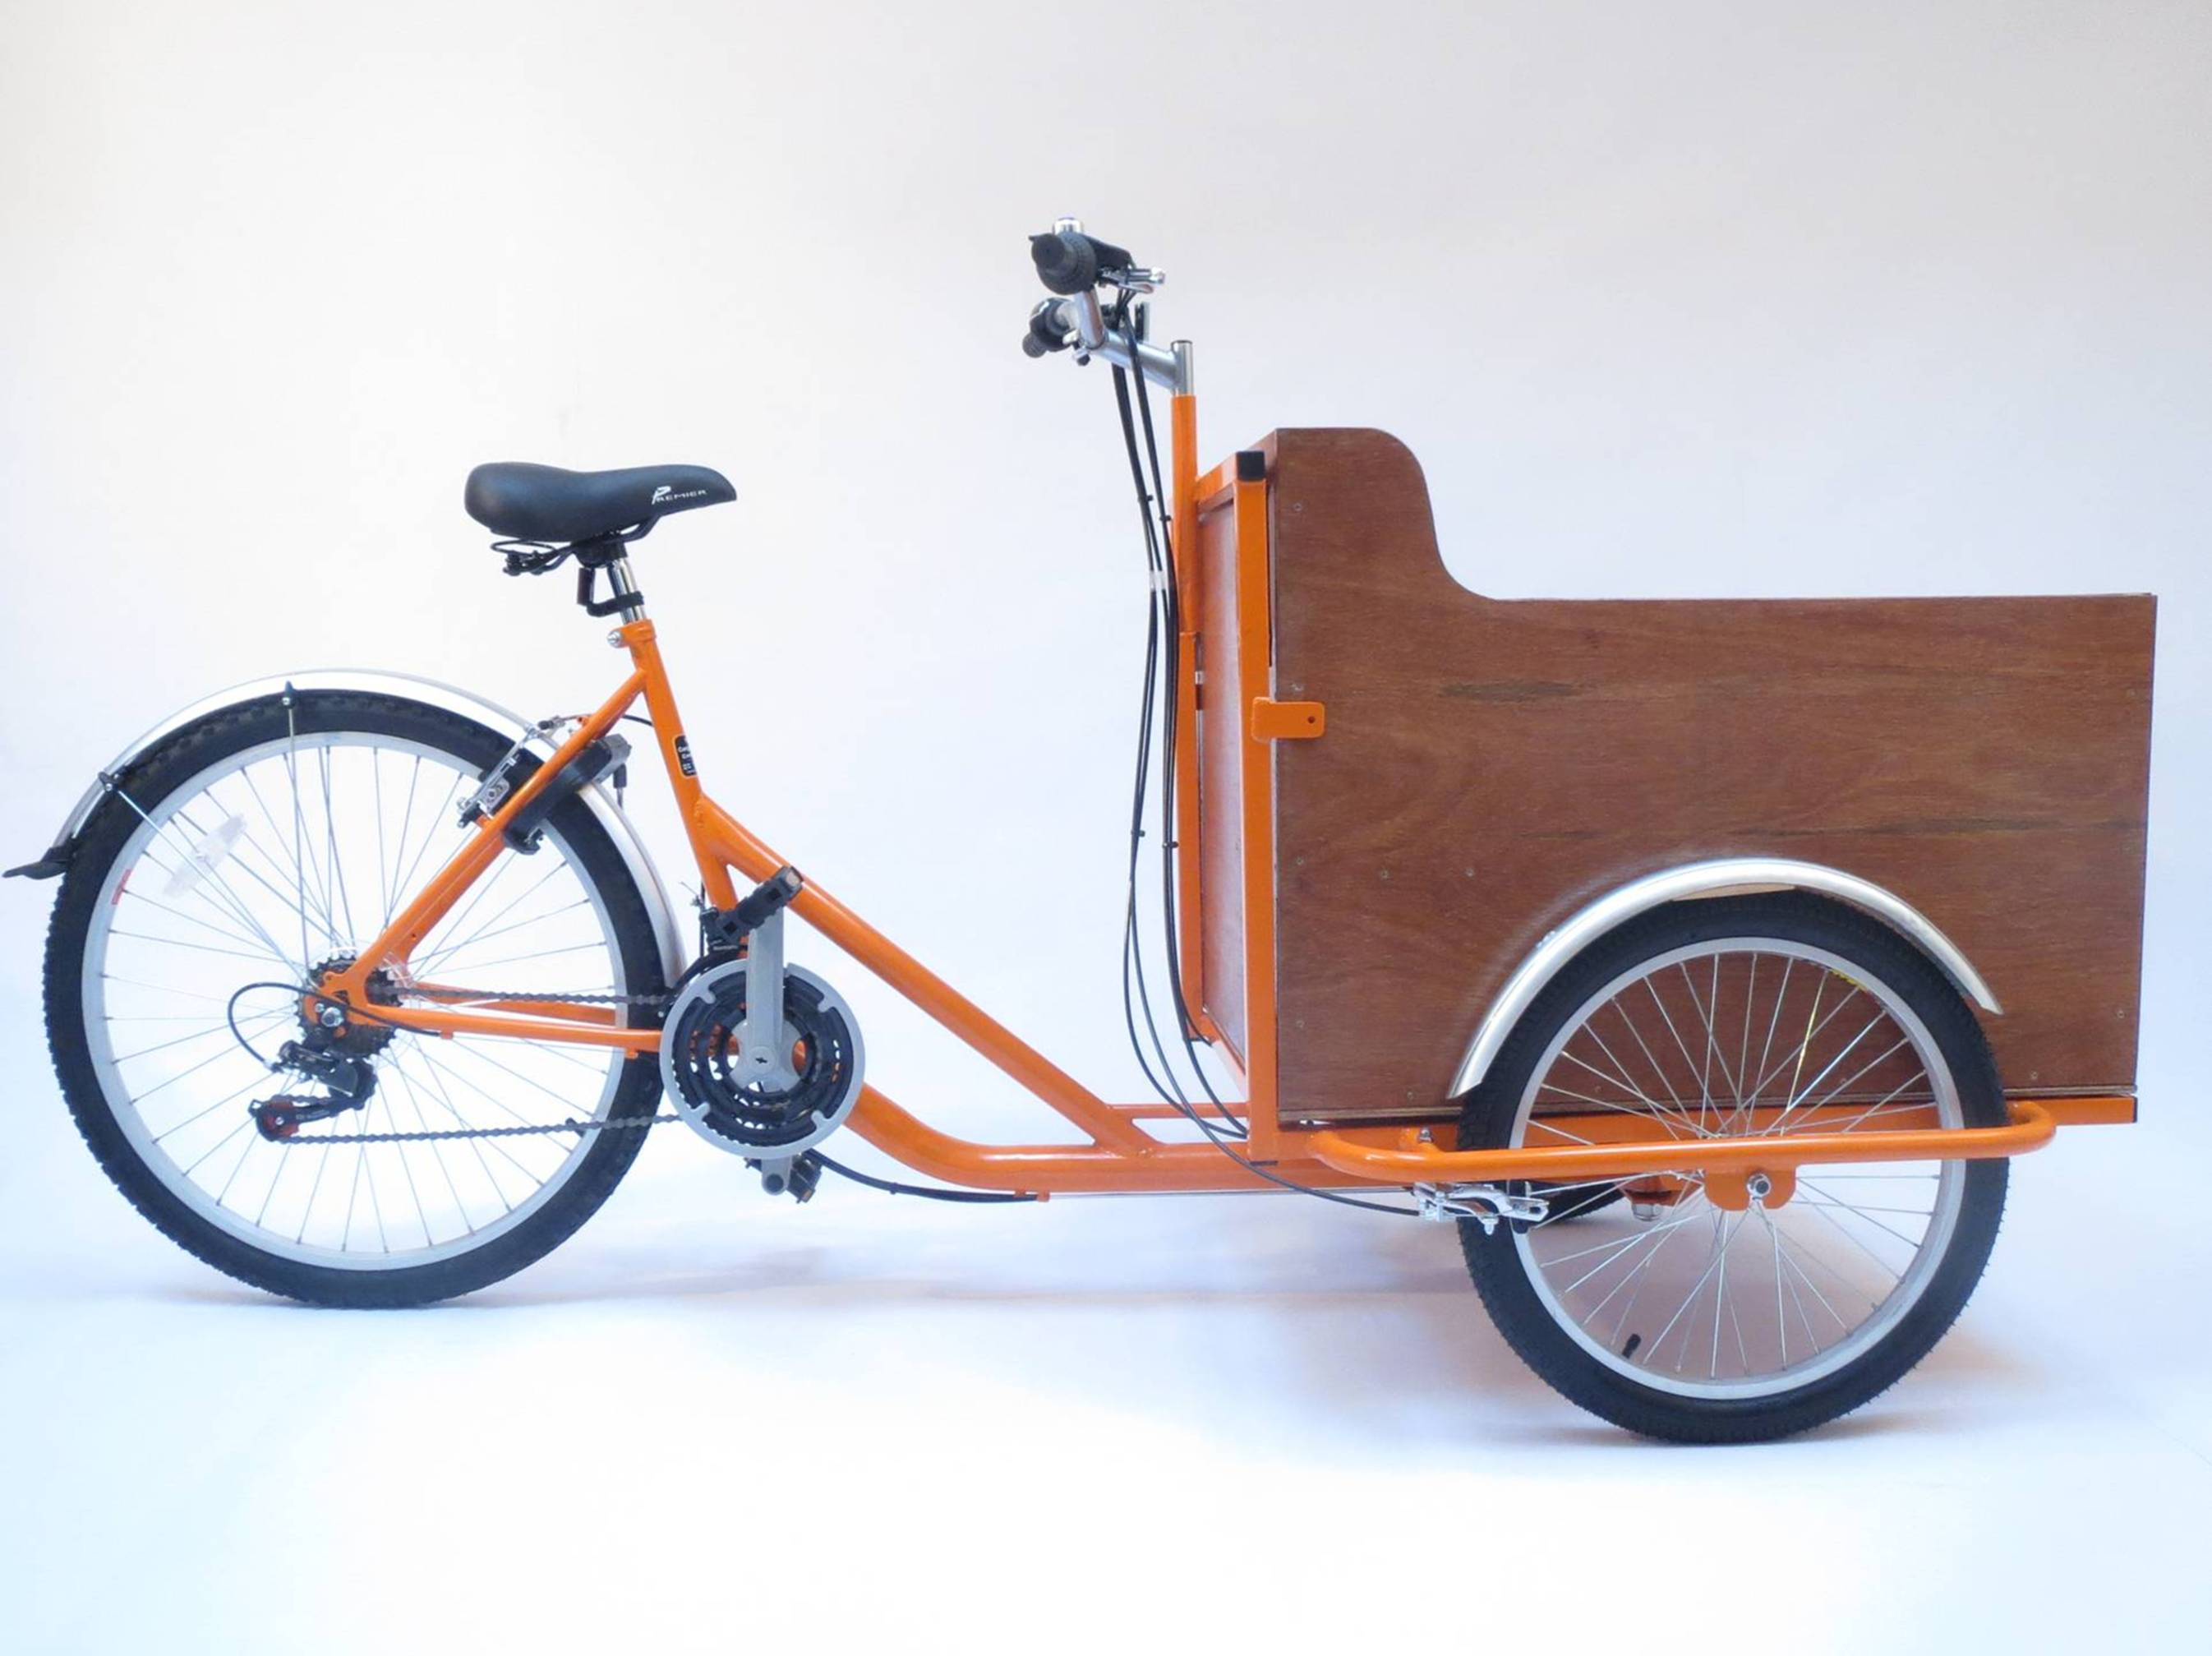 Bike Cargo Carrier : Little people carrier the cargo trike for carrying